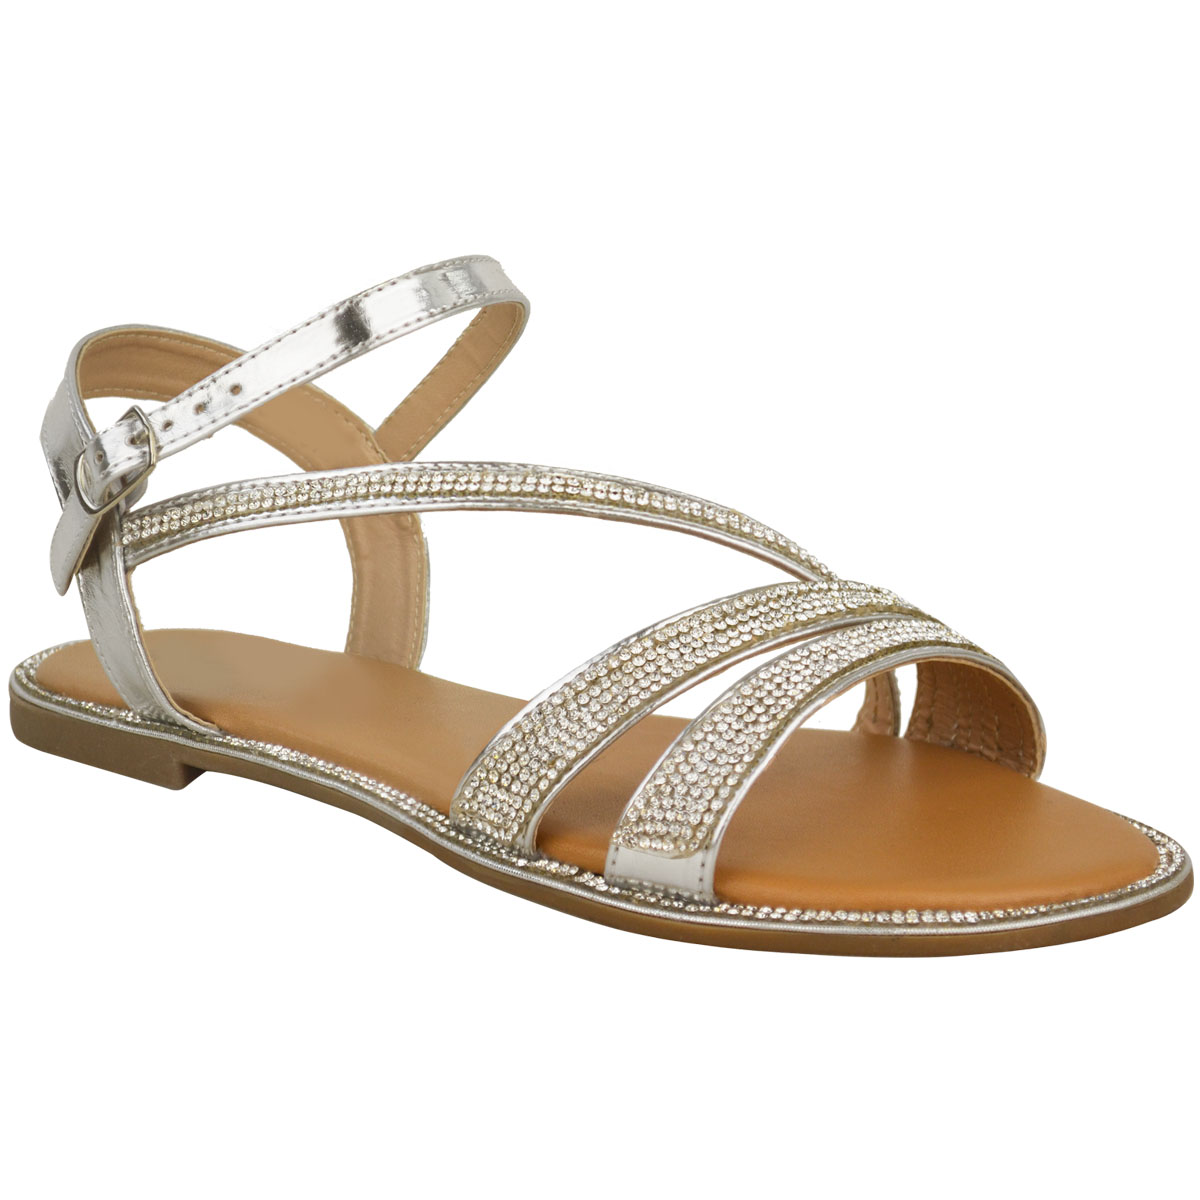 Shop Dillard's large selection of women's flat sandals, available in your favorite brands and styles.